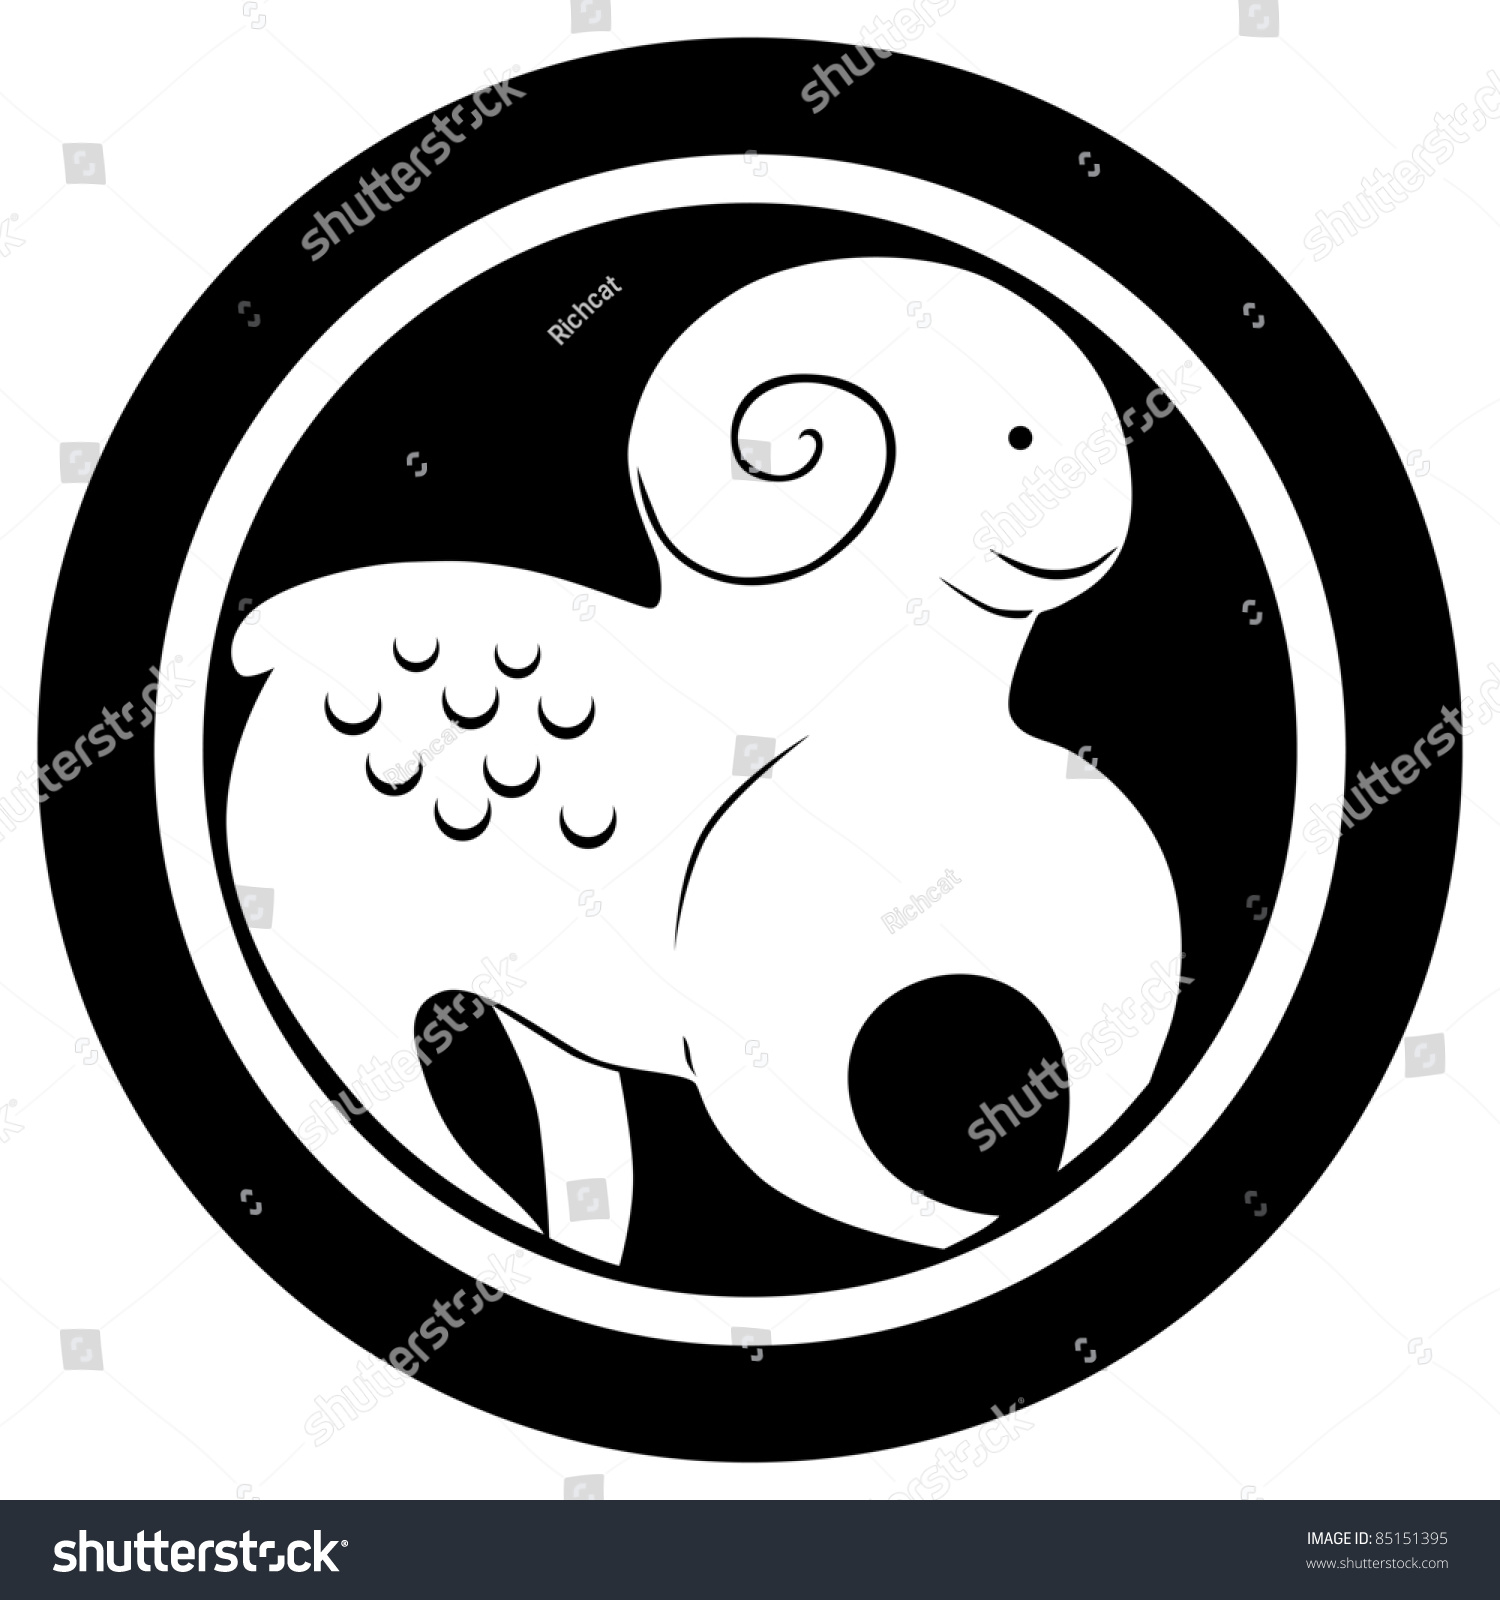 Stylized Zodiac Sign The Ram Tattoo Isolated Object Over White